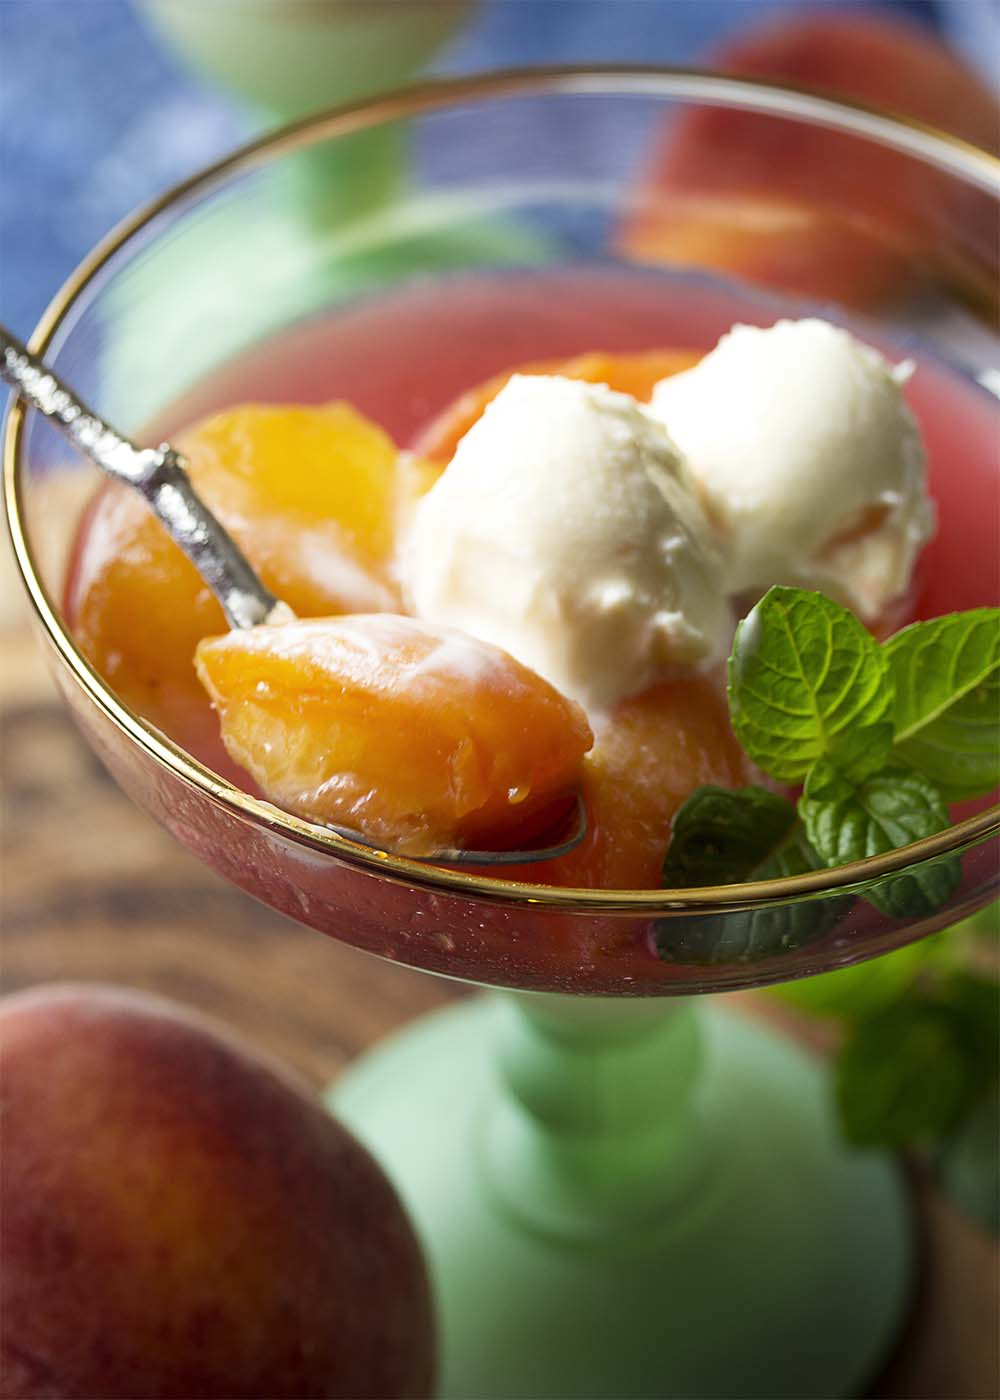 A spoon holding up a piece of tender poached peach along with some of the spiced syrup and some mascarpone on top.